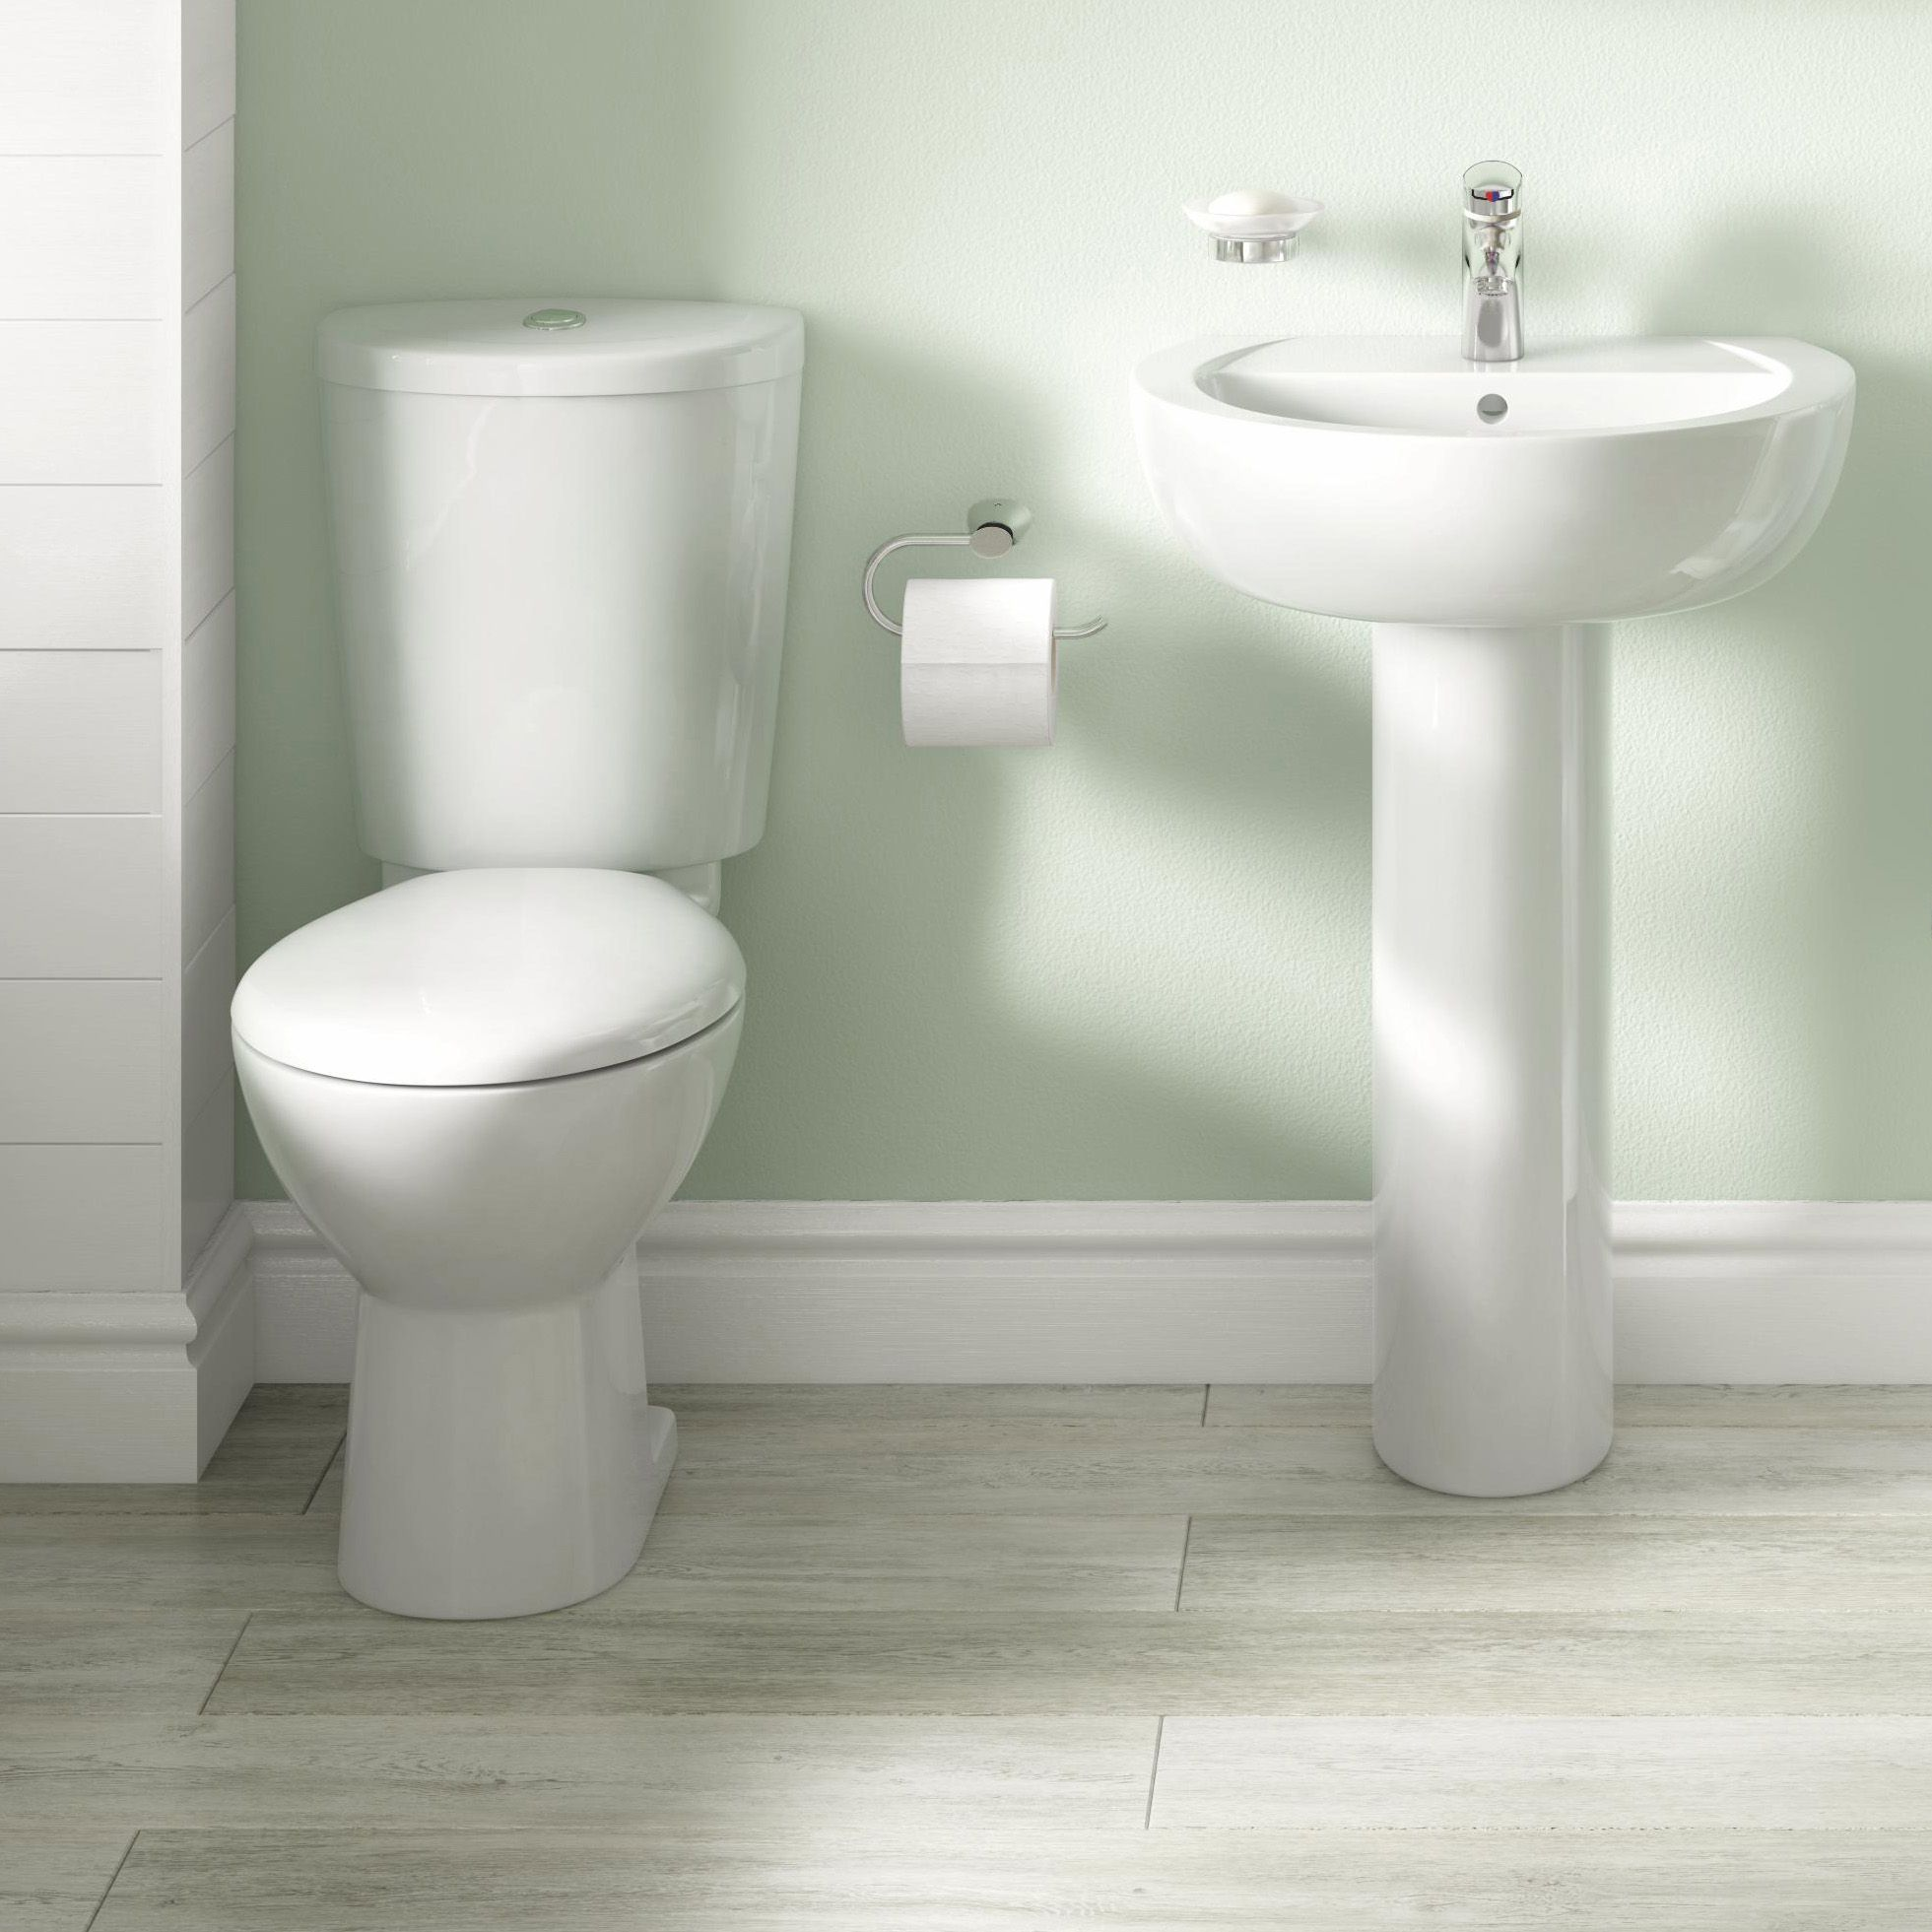 Cooke & Lewis Alonso Toilet, Basin & Tap Pack | Departments | DIY at B&Q